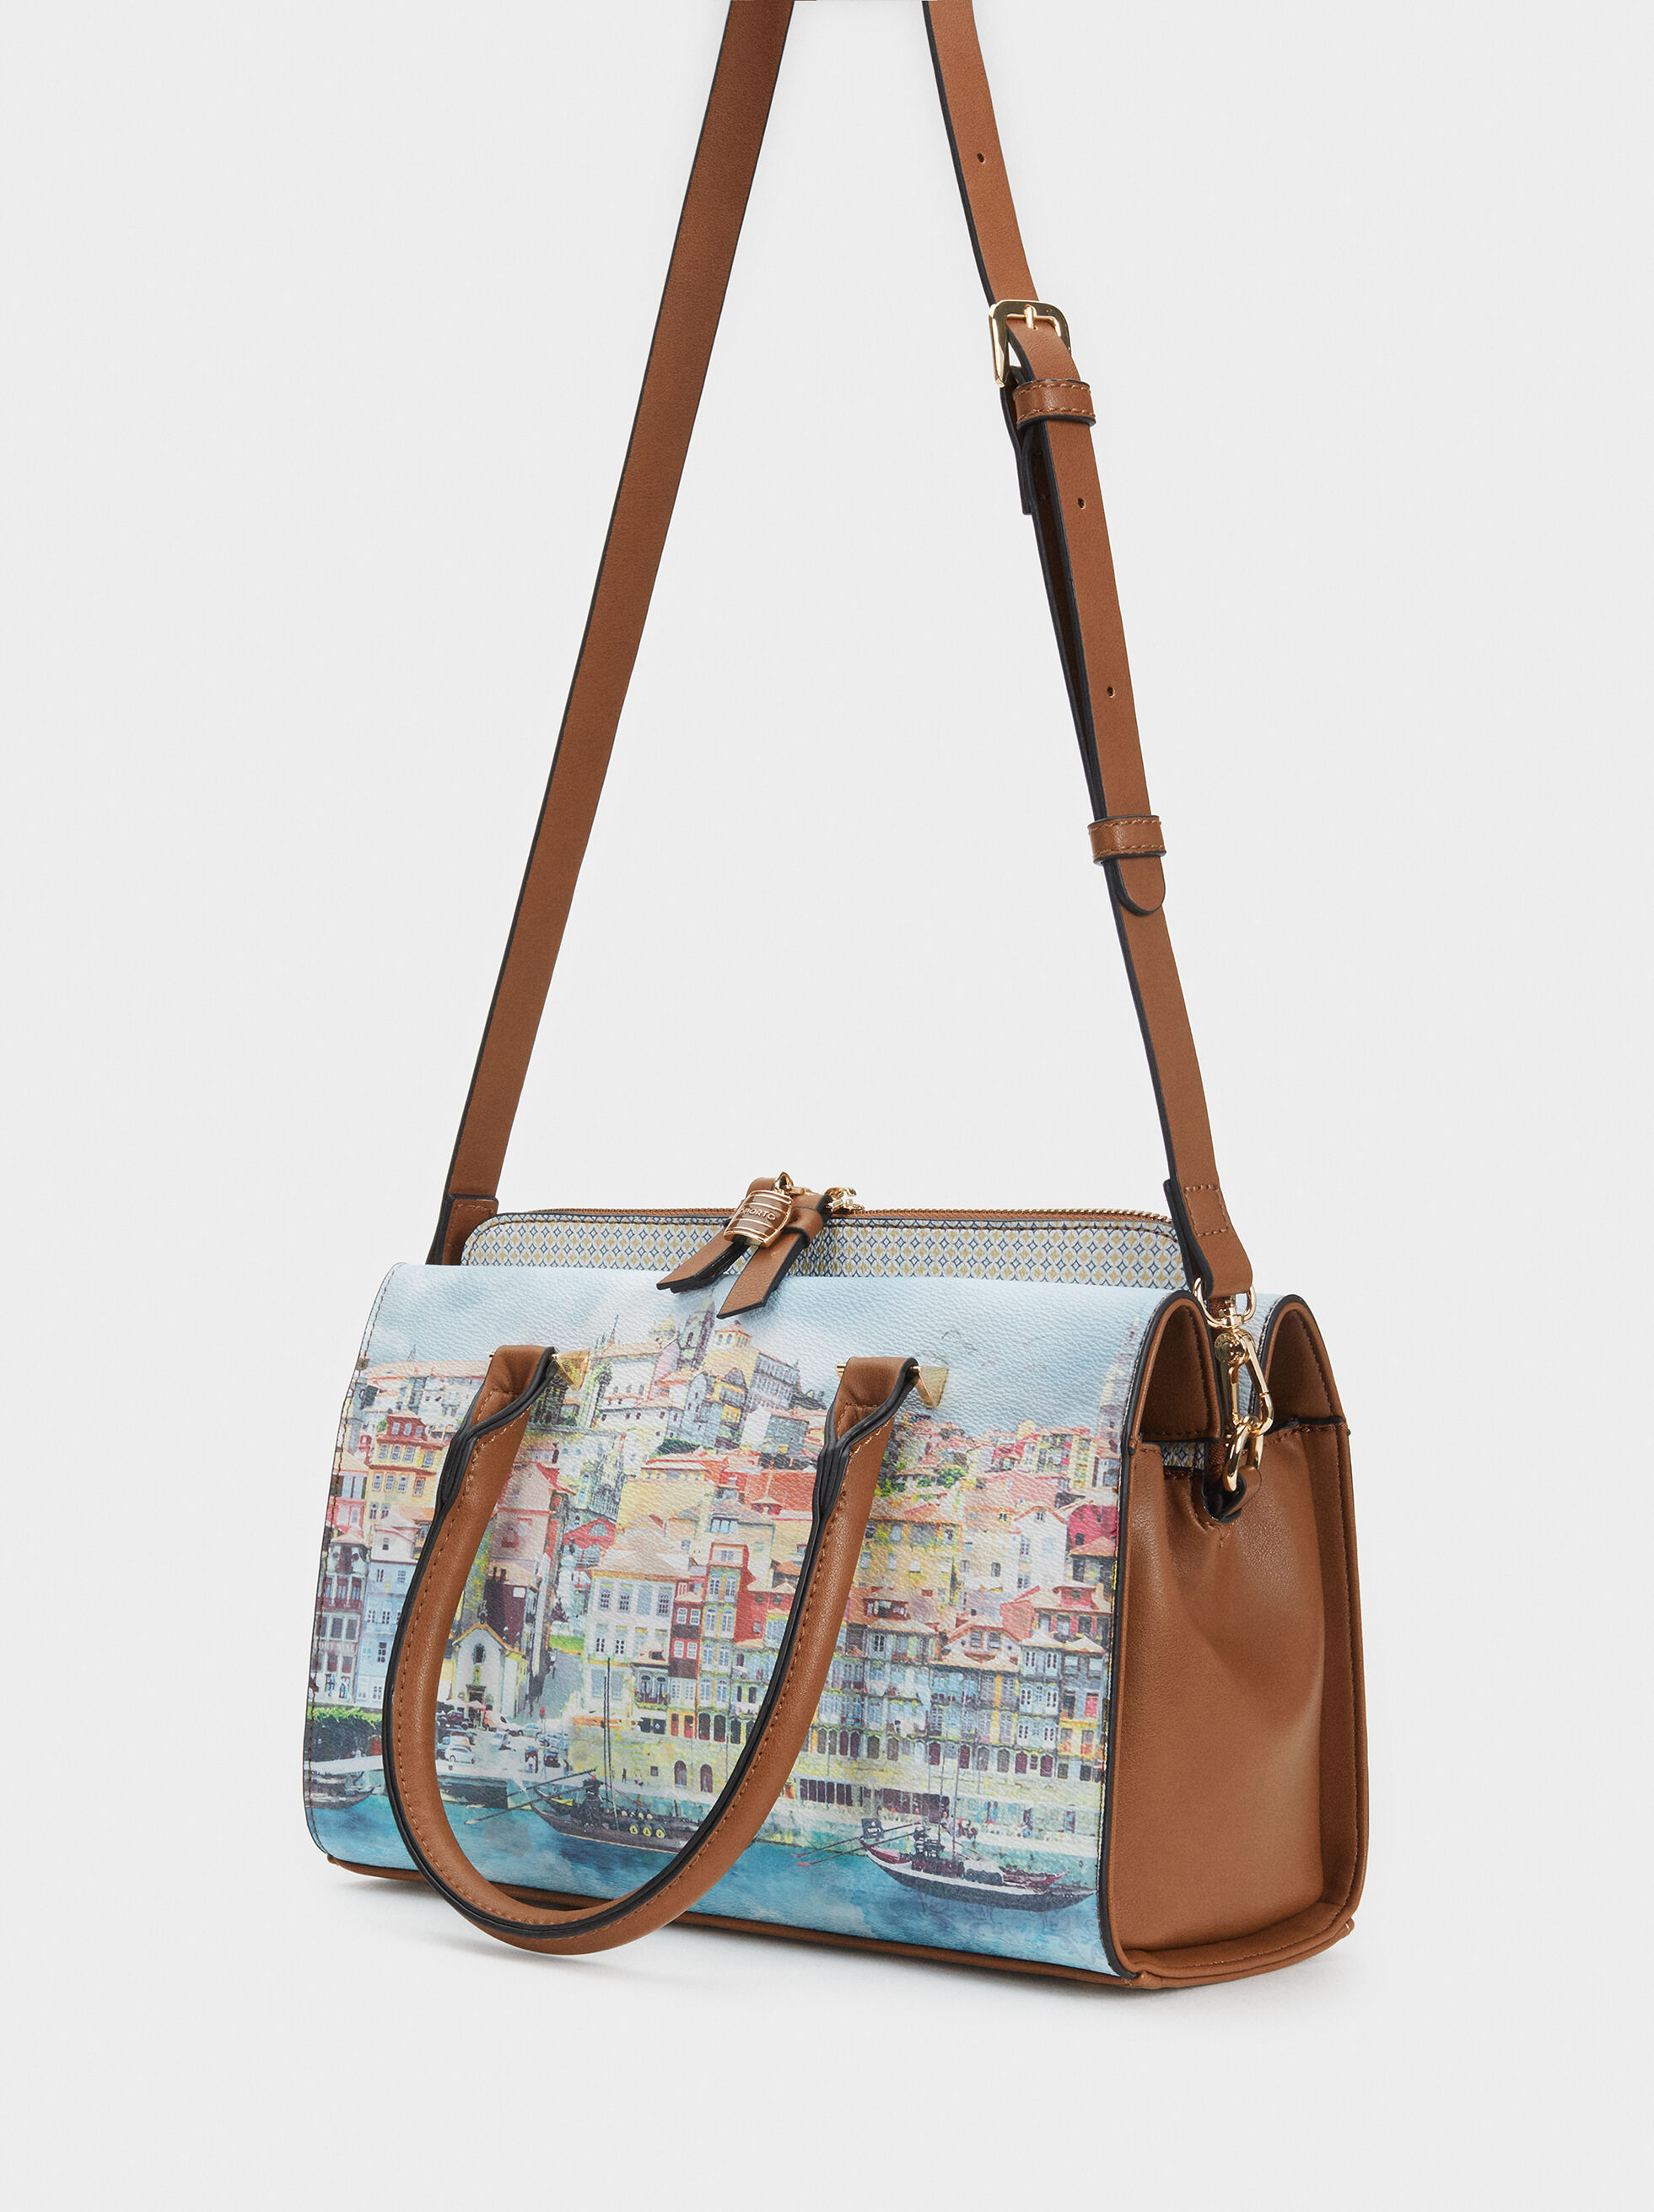 Porto Print Tote Bag, Blue, hi-res